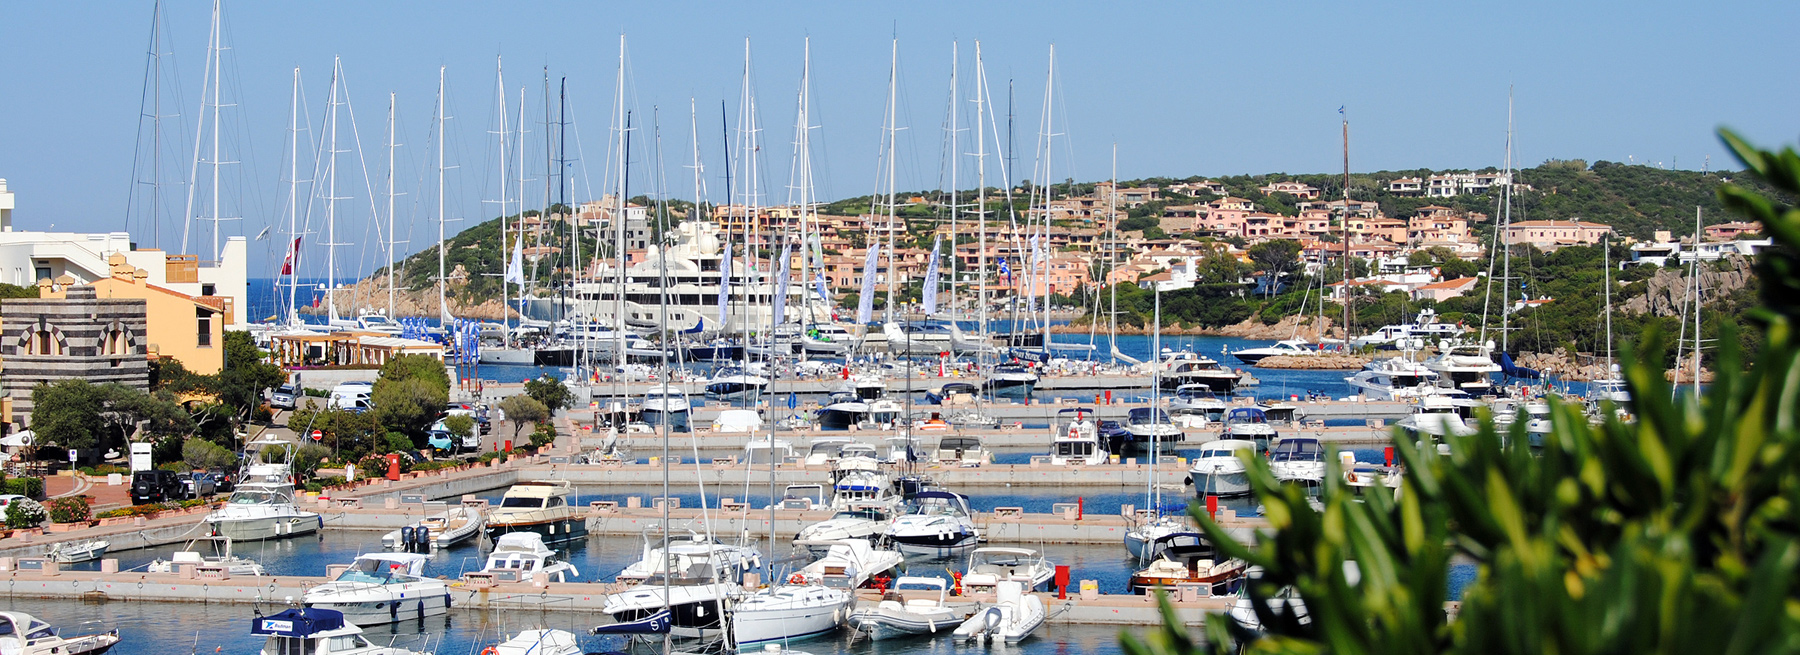 Delphina The Wine Festival returns Porto Cervo  Sardinia - Italy